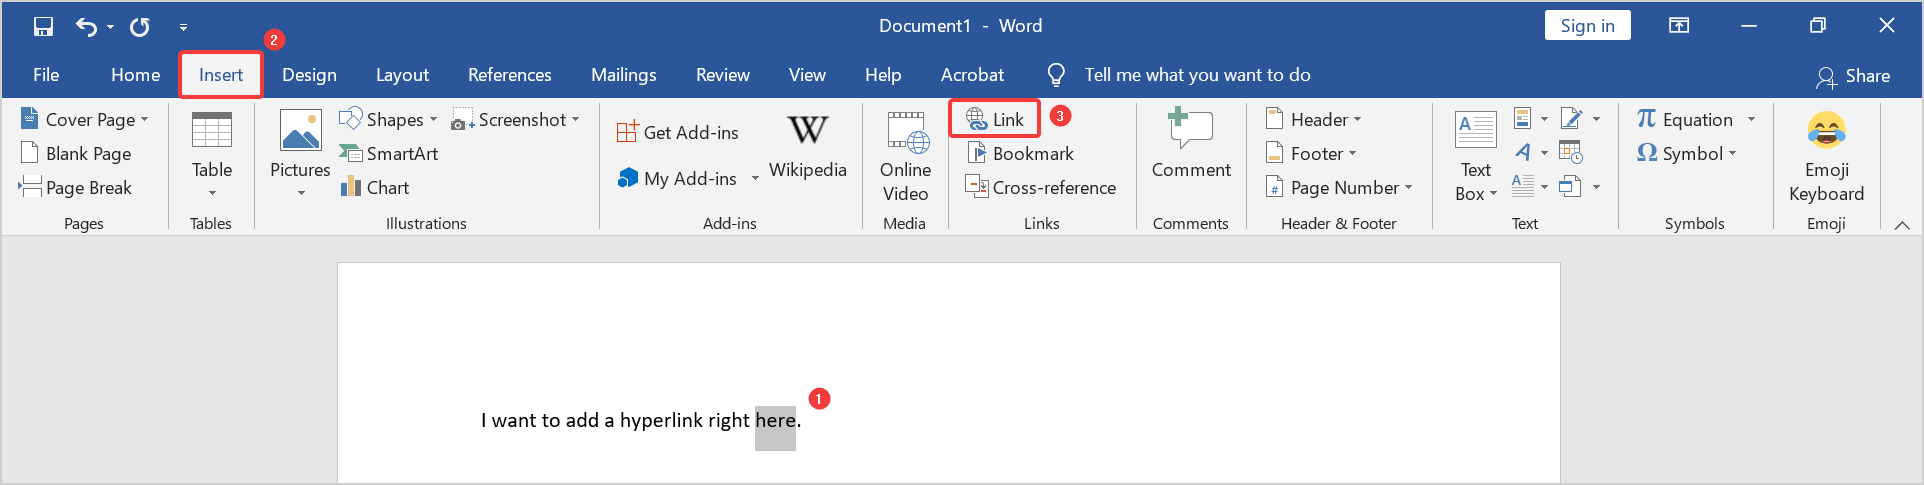 how to edit a hyperlink in word